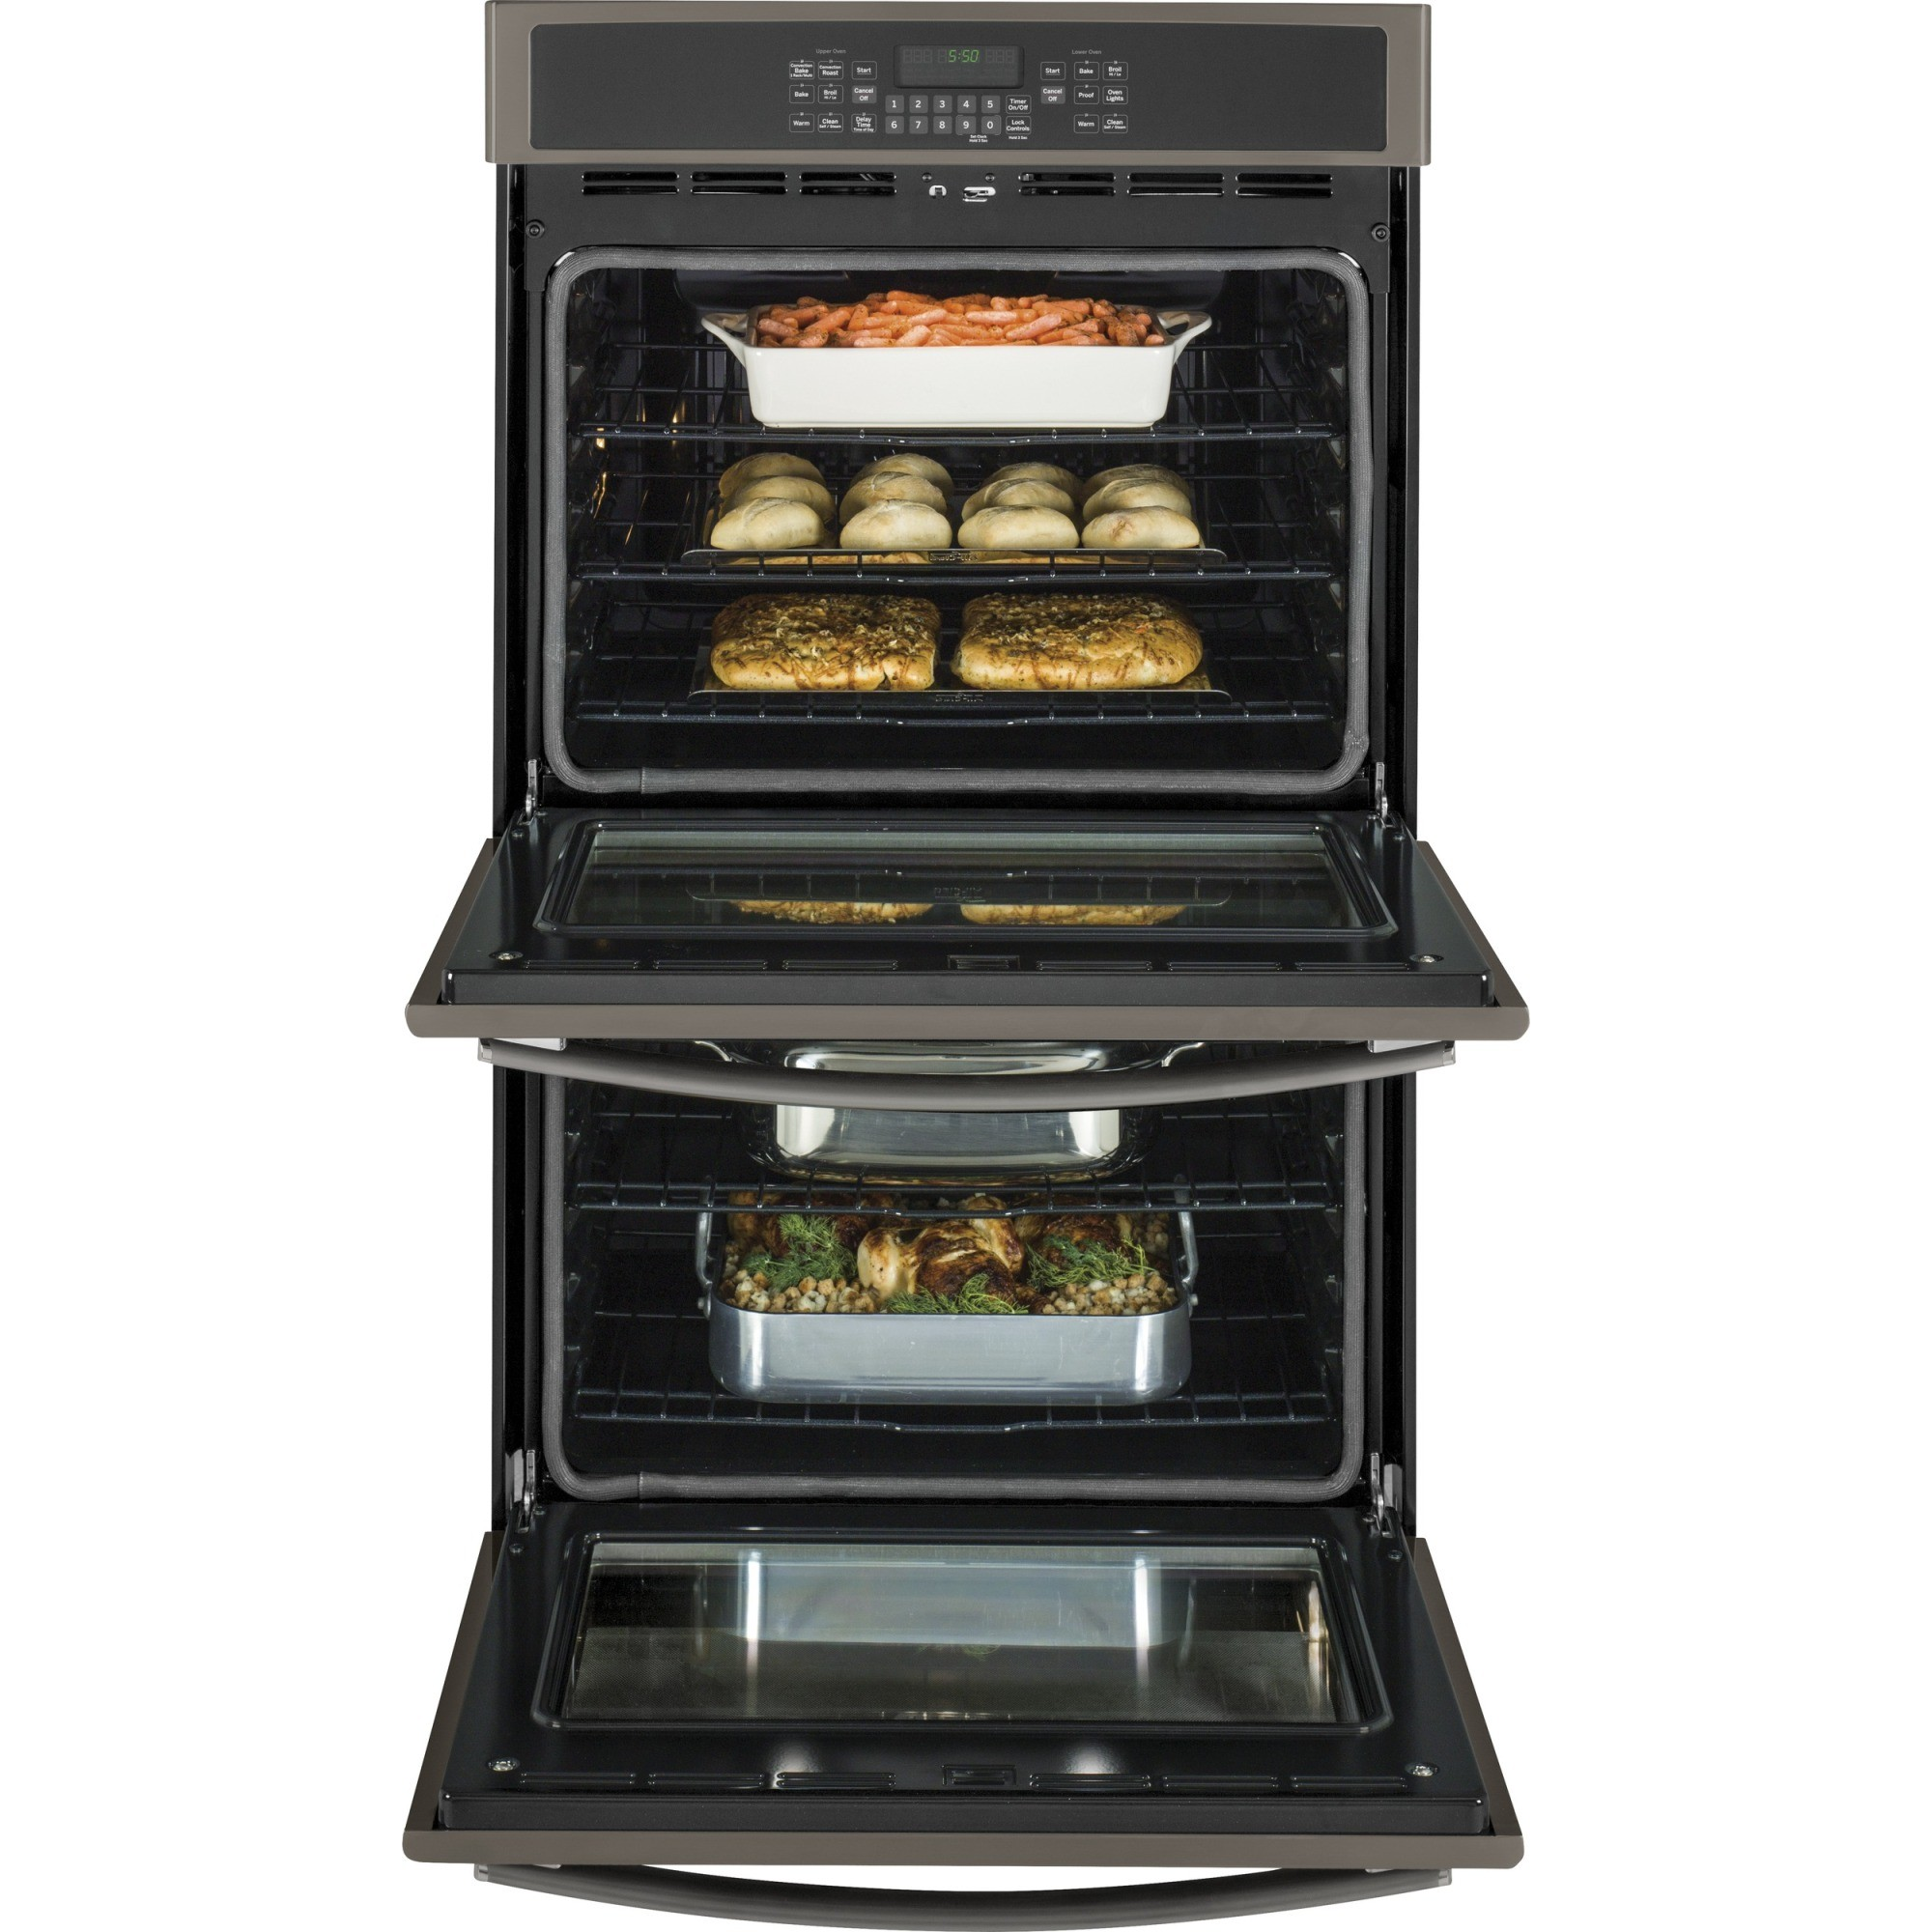 Jt5500ejes Ge 30 Quot Built In Double Wall Oven With Convection